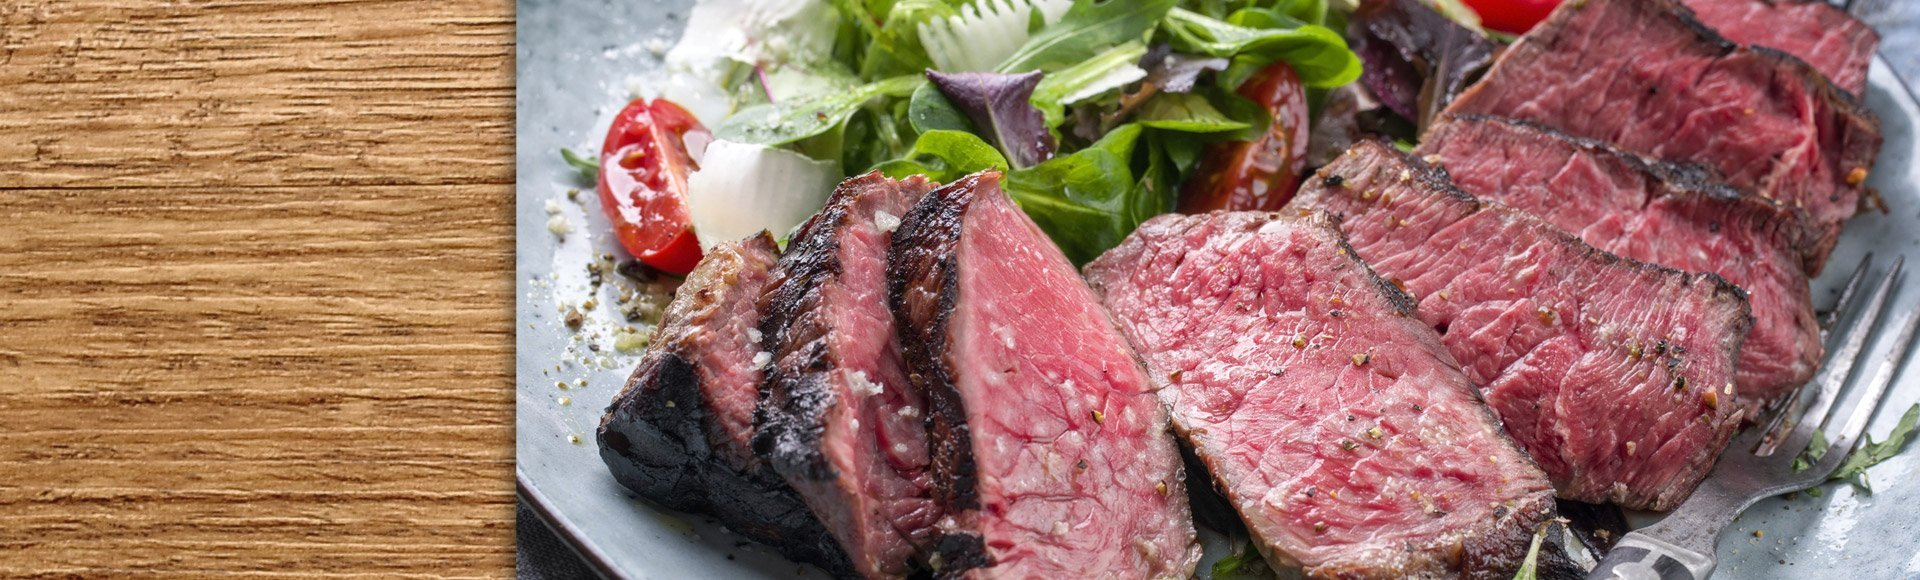 elk steaks sliced on a plate with salad